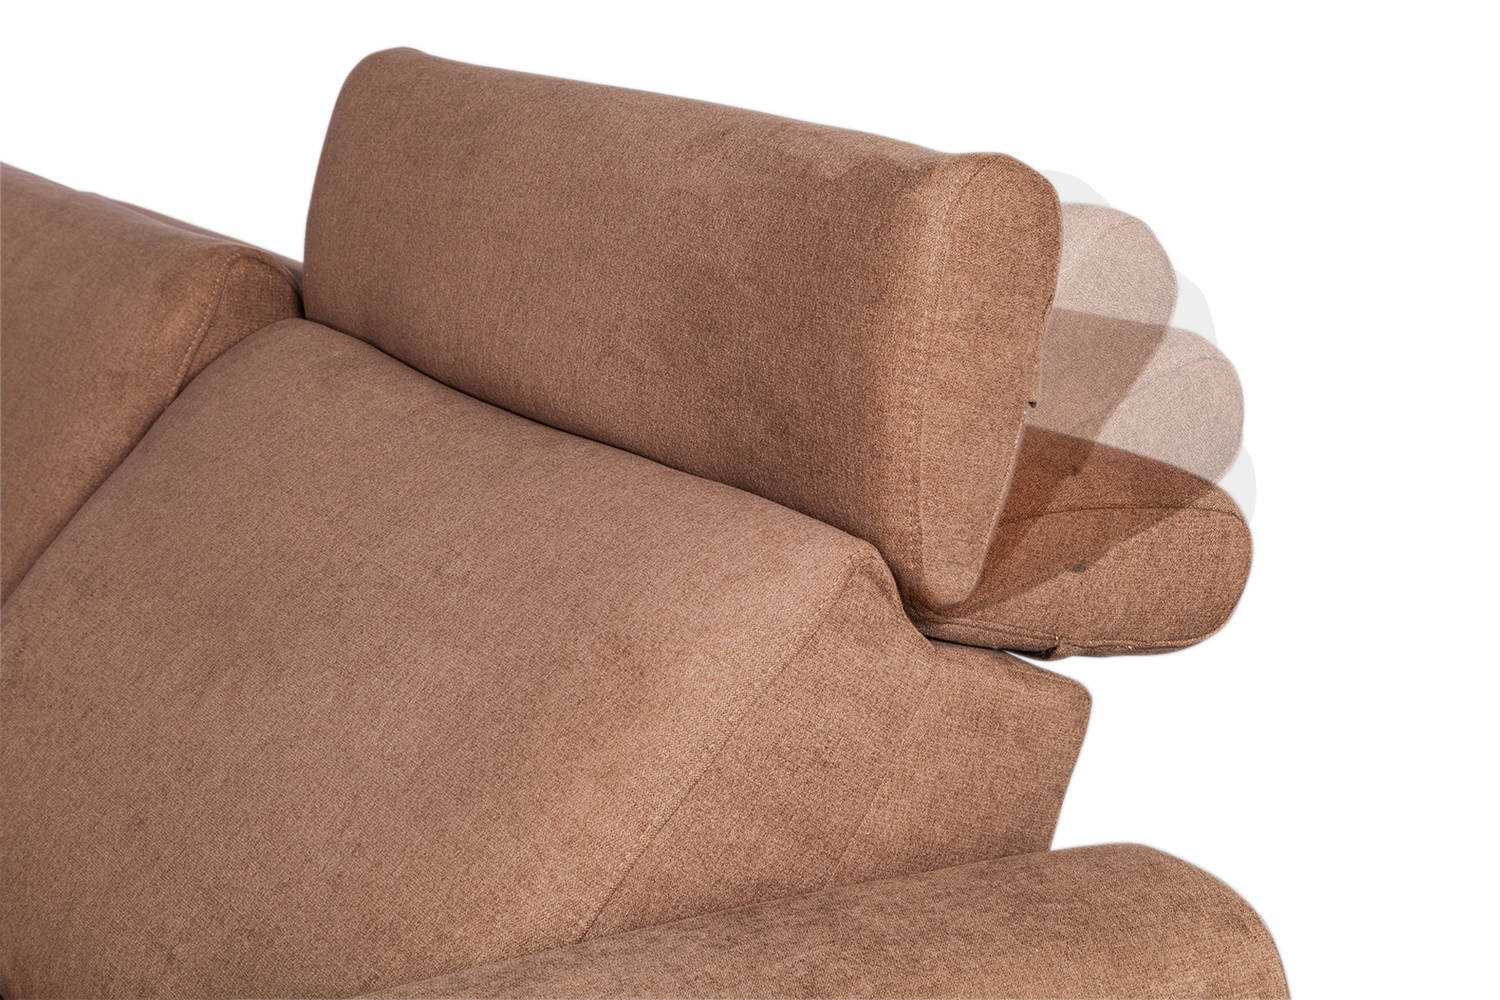 In picture: Hilton Combination A detail: headrest different positions.